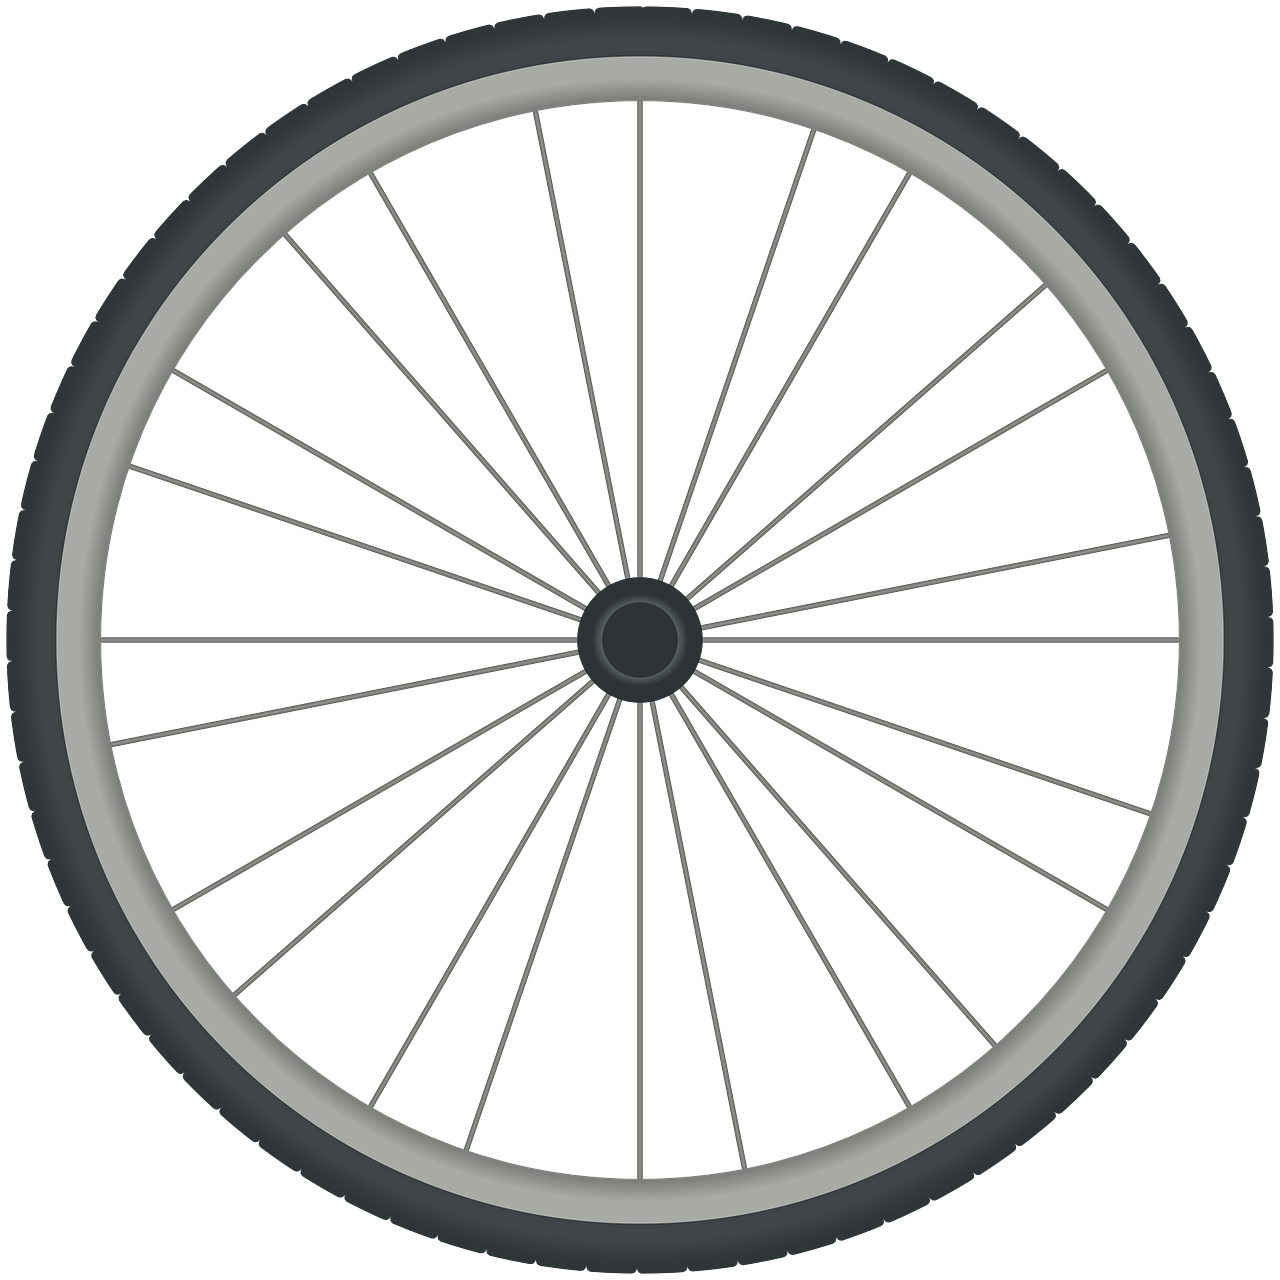 Bicycle wheel cycle tyre. Clipart bike bicyle